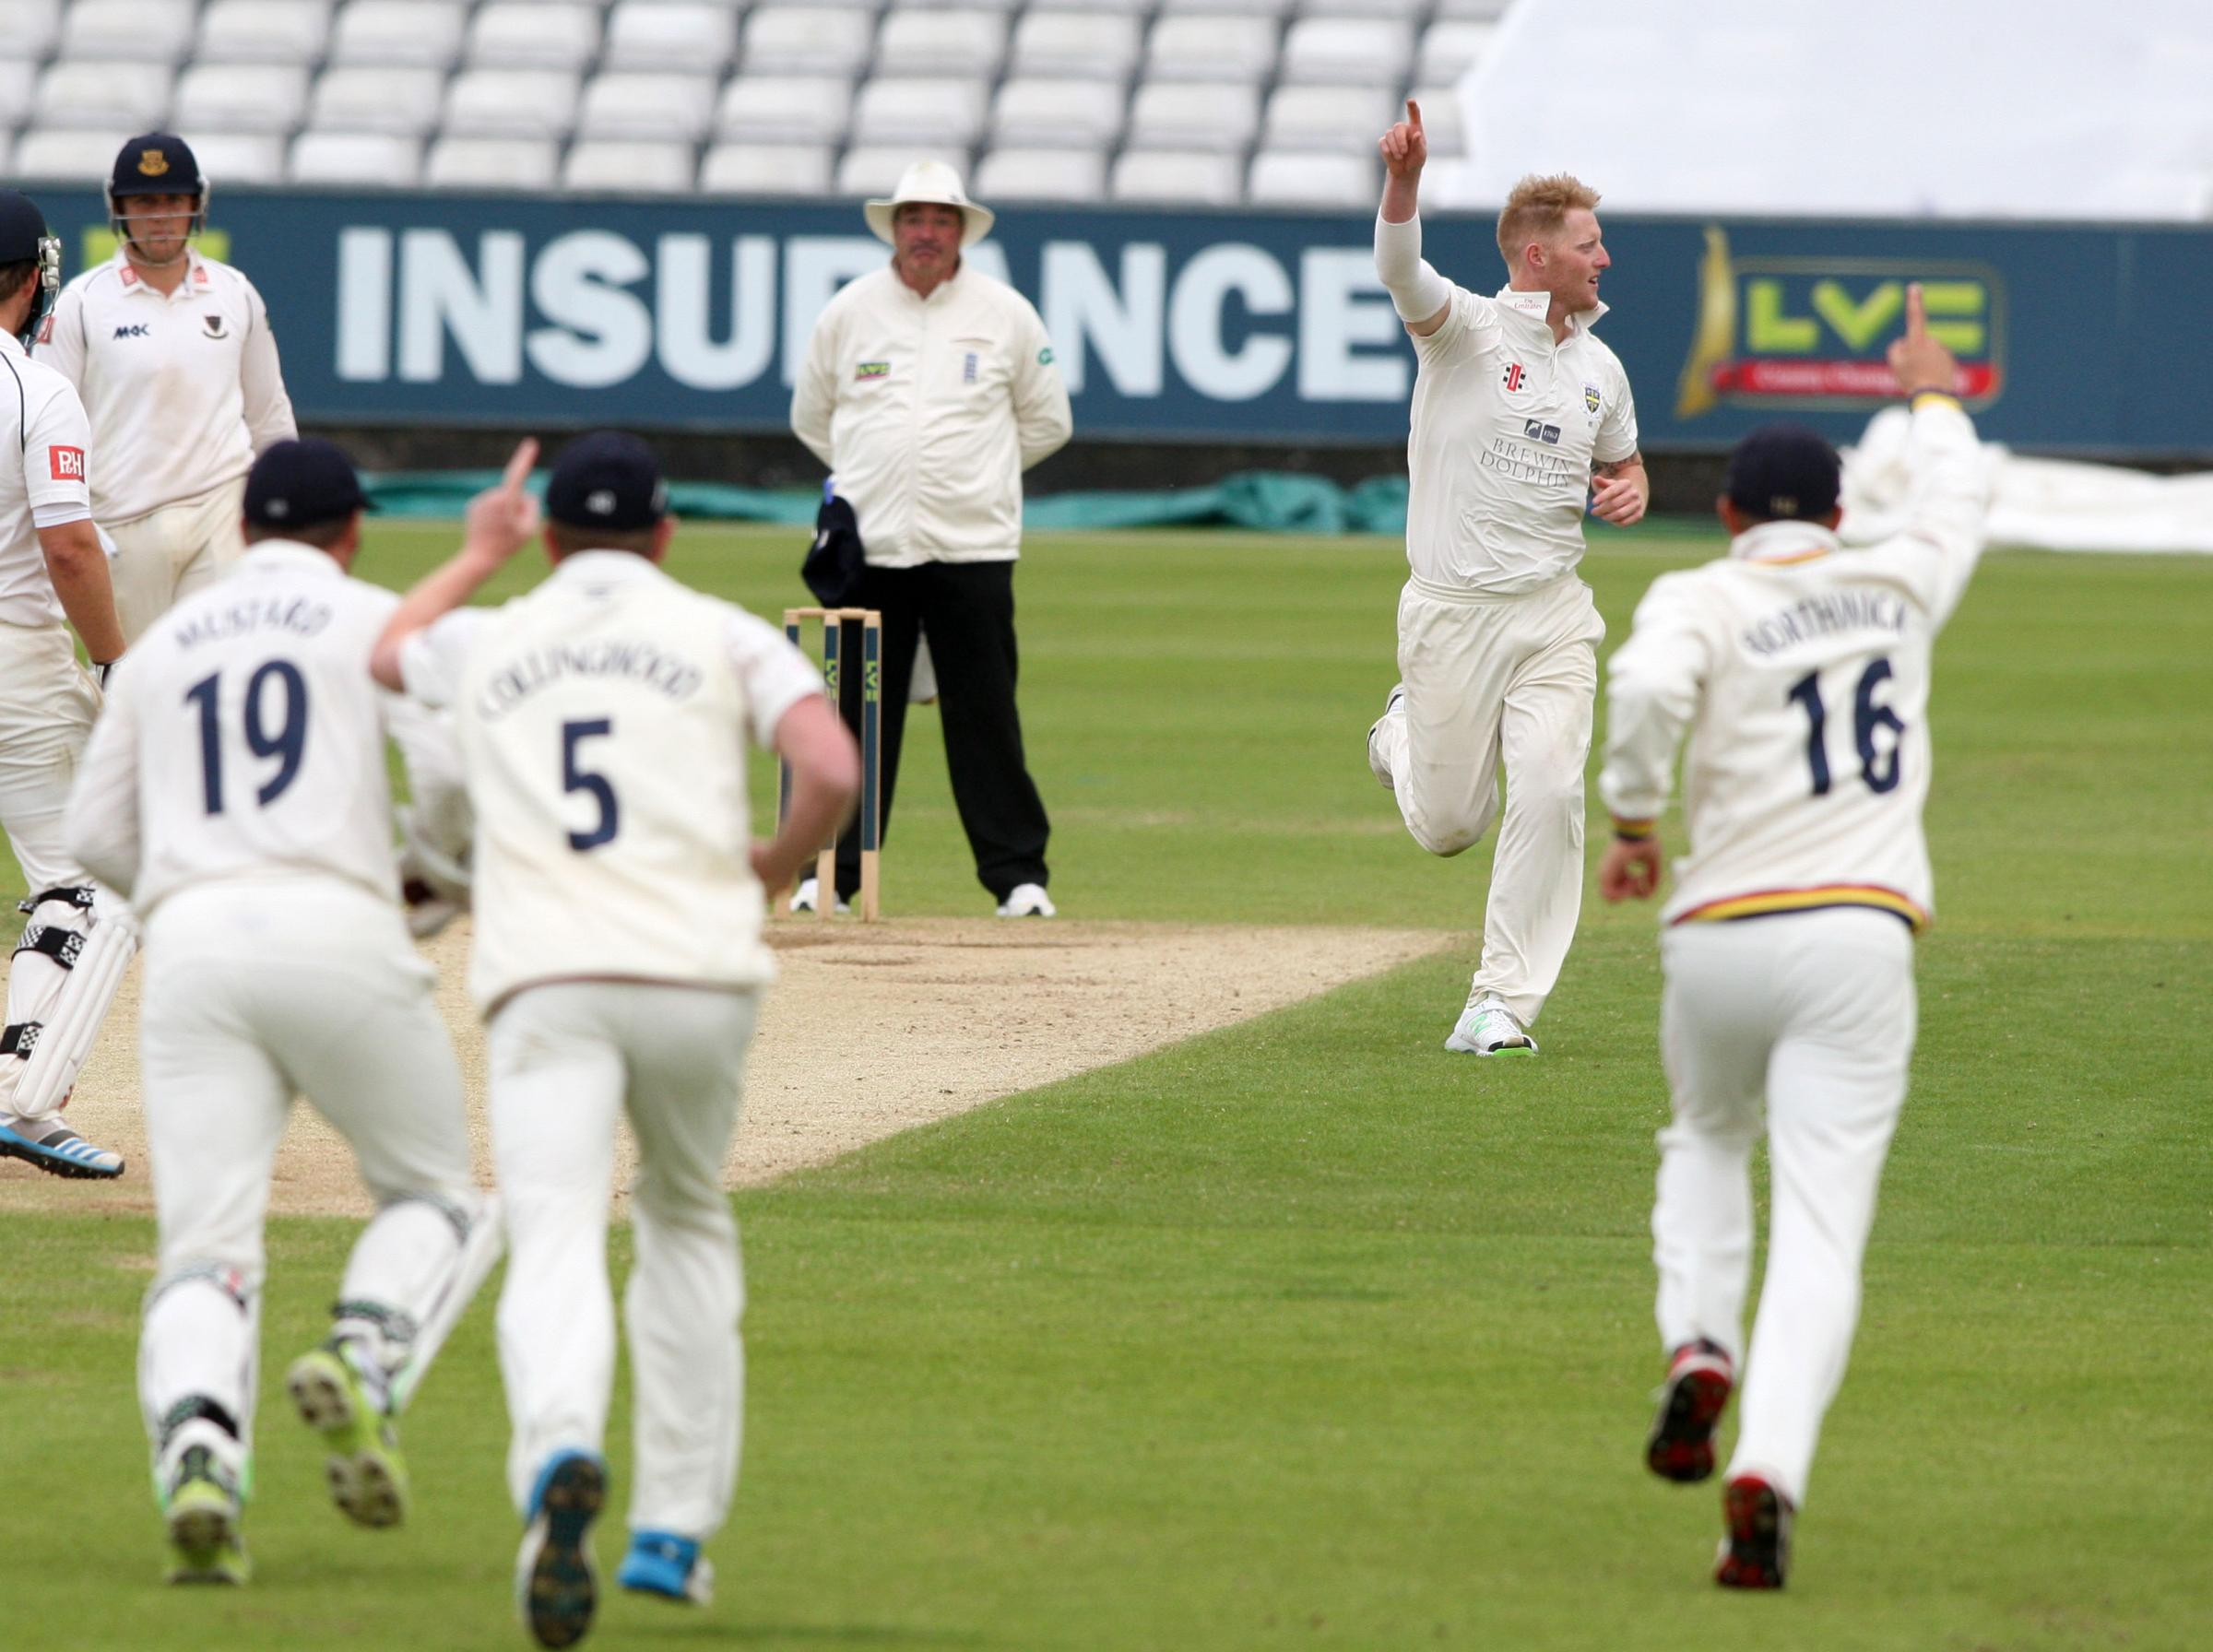 TOP PERFORMER: Durham's Ben Stokes has three second innings wickets to his name, after taking seven in the first innings